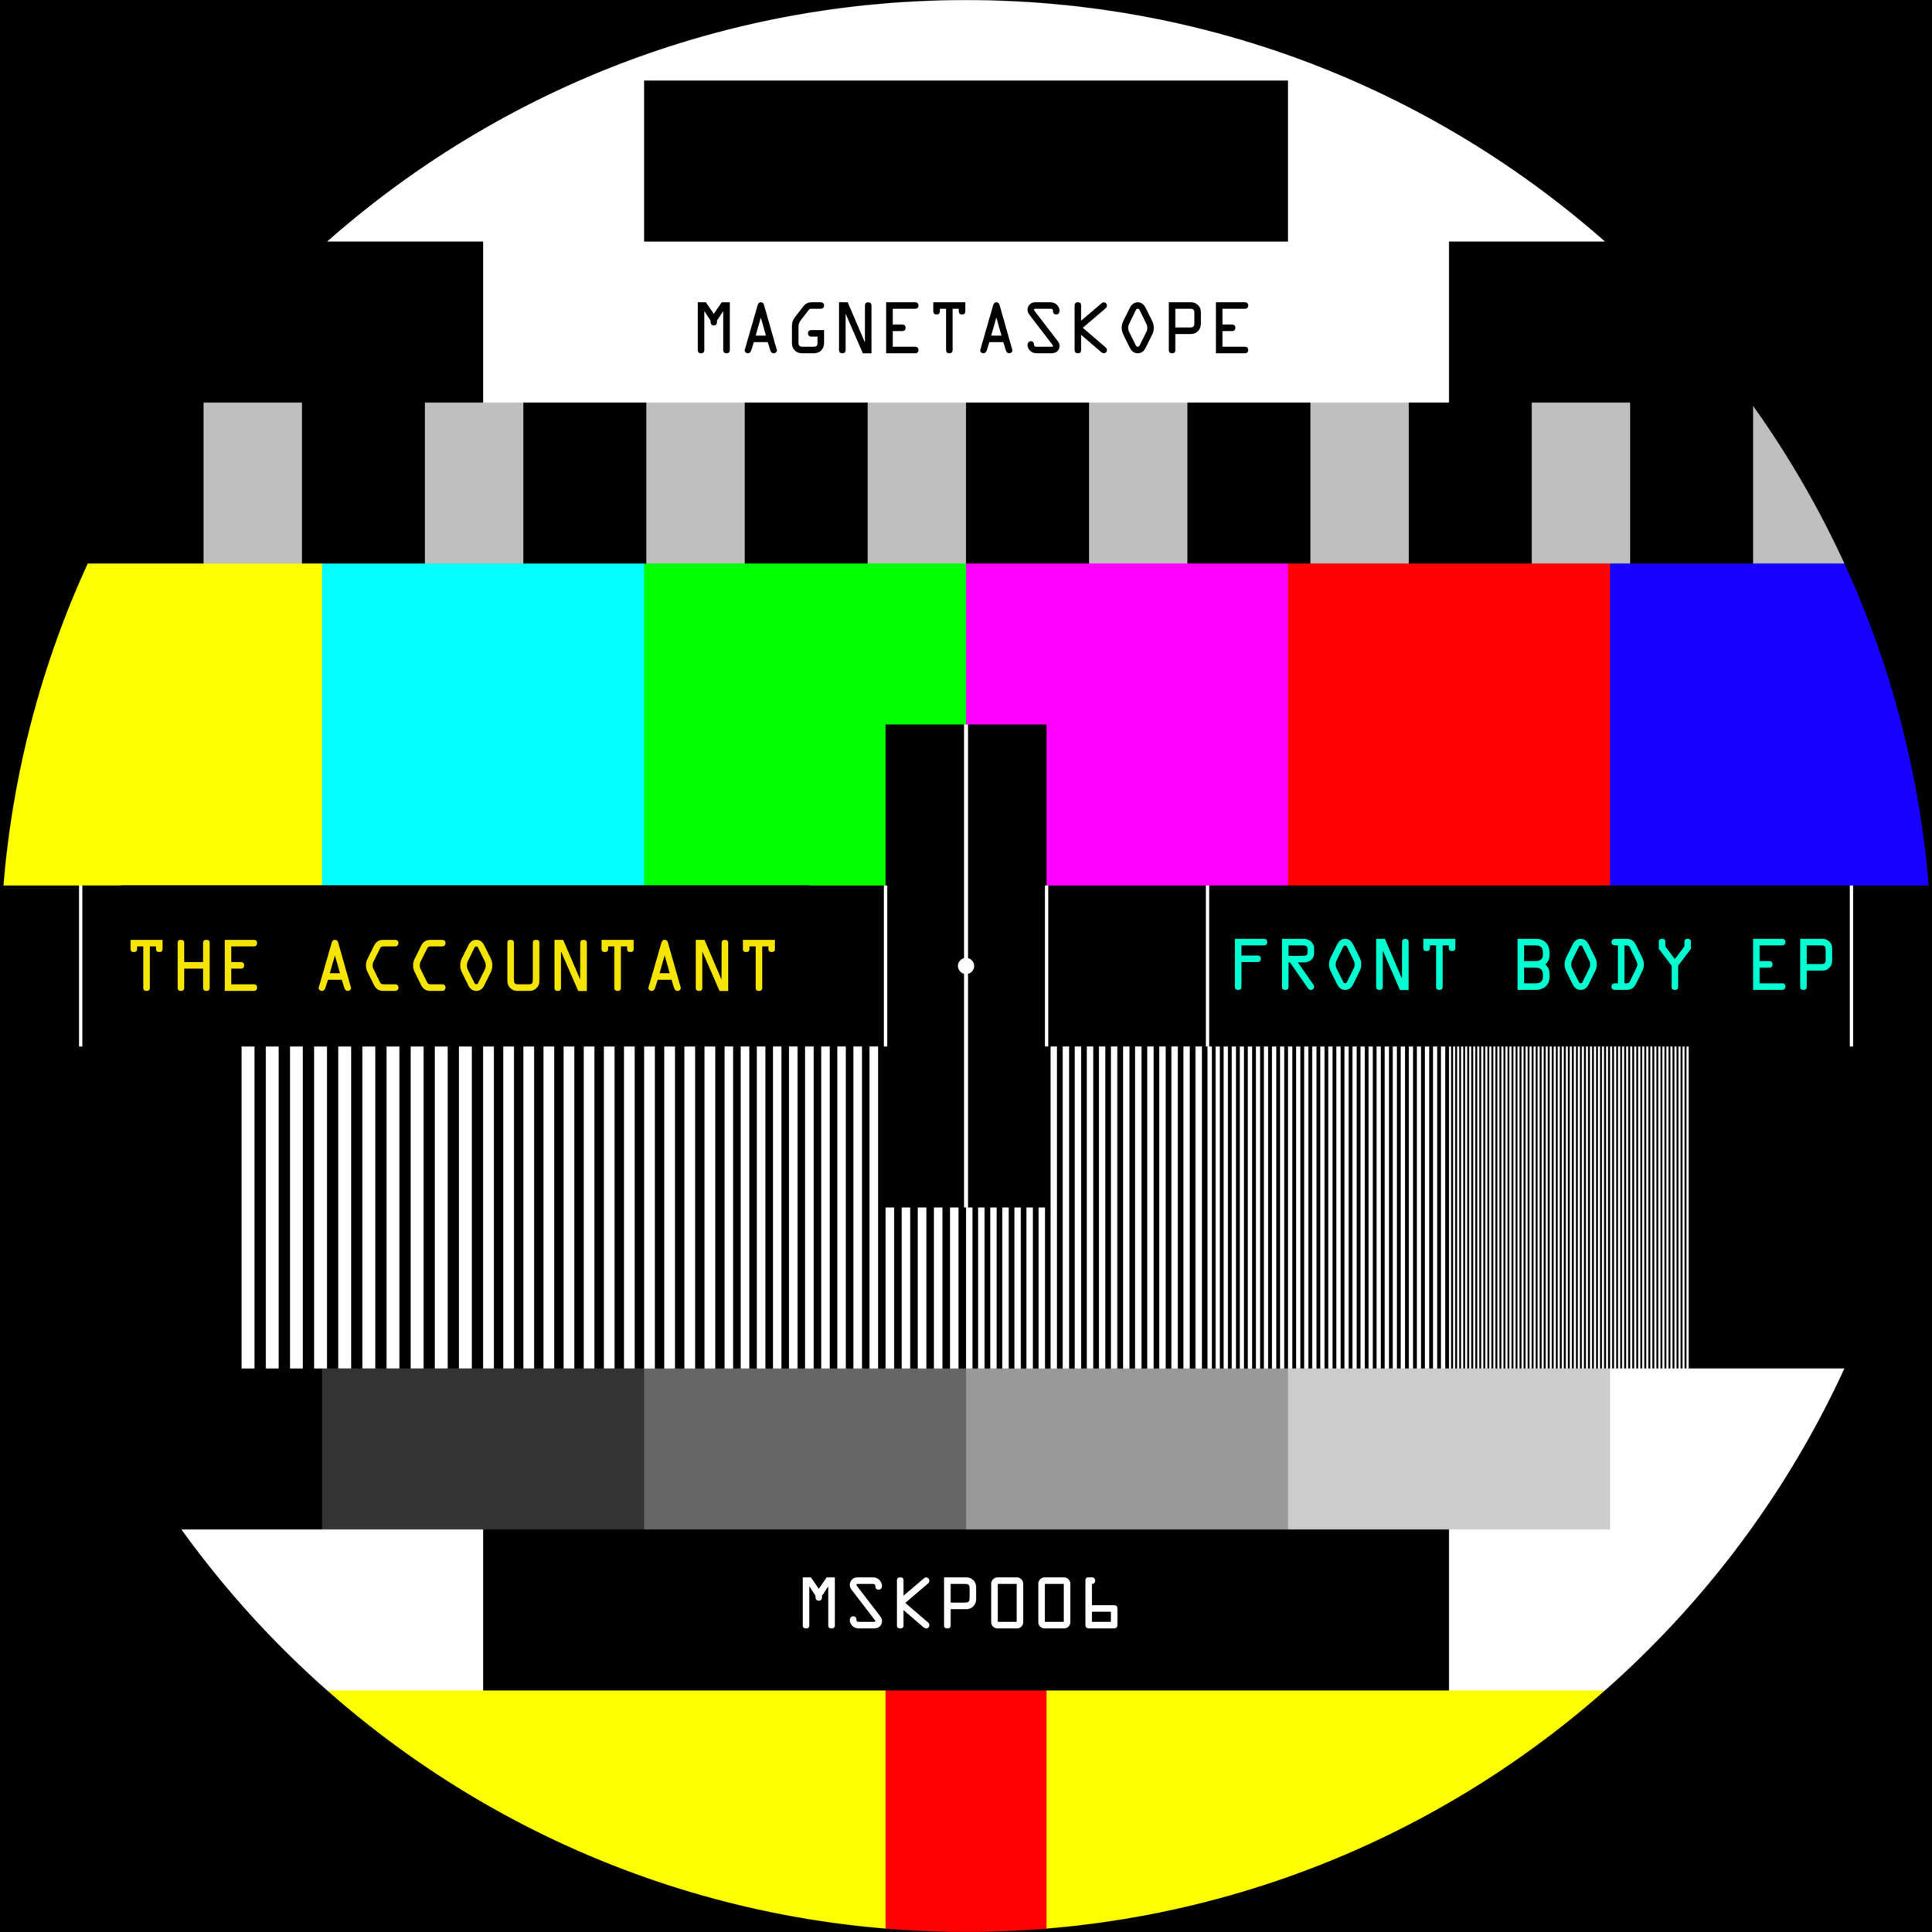 MSKP006 - THE ACCOUNTANT // FRONT BODY EPTO BE RELEASED 07.11.2019